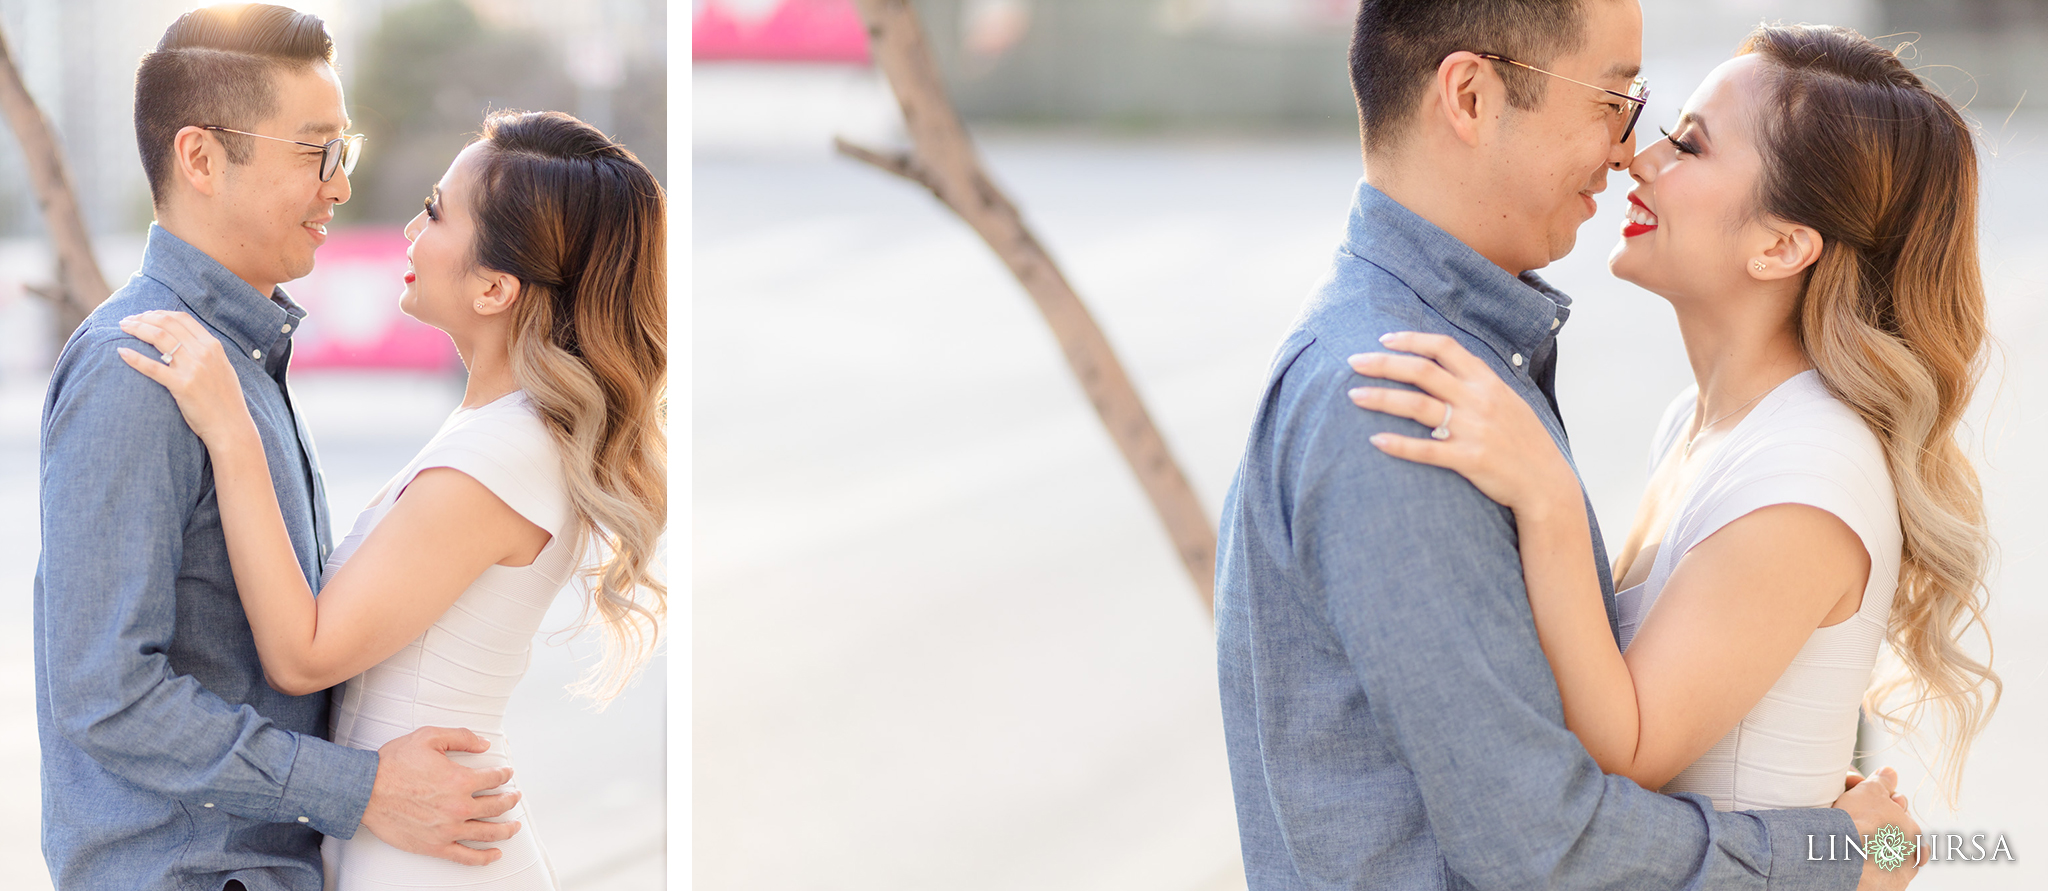 13 Downtown Los Angeles Engagement Street Photography